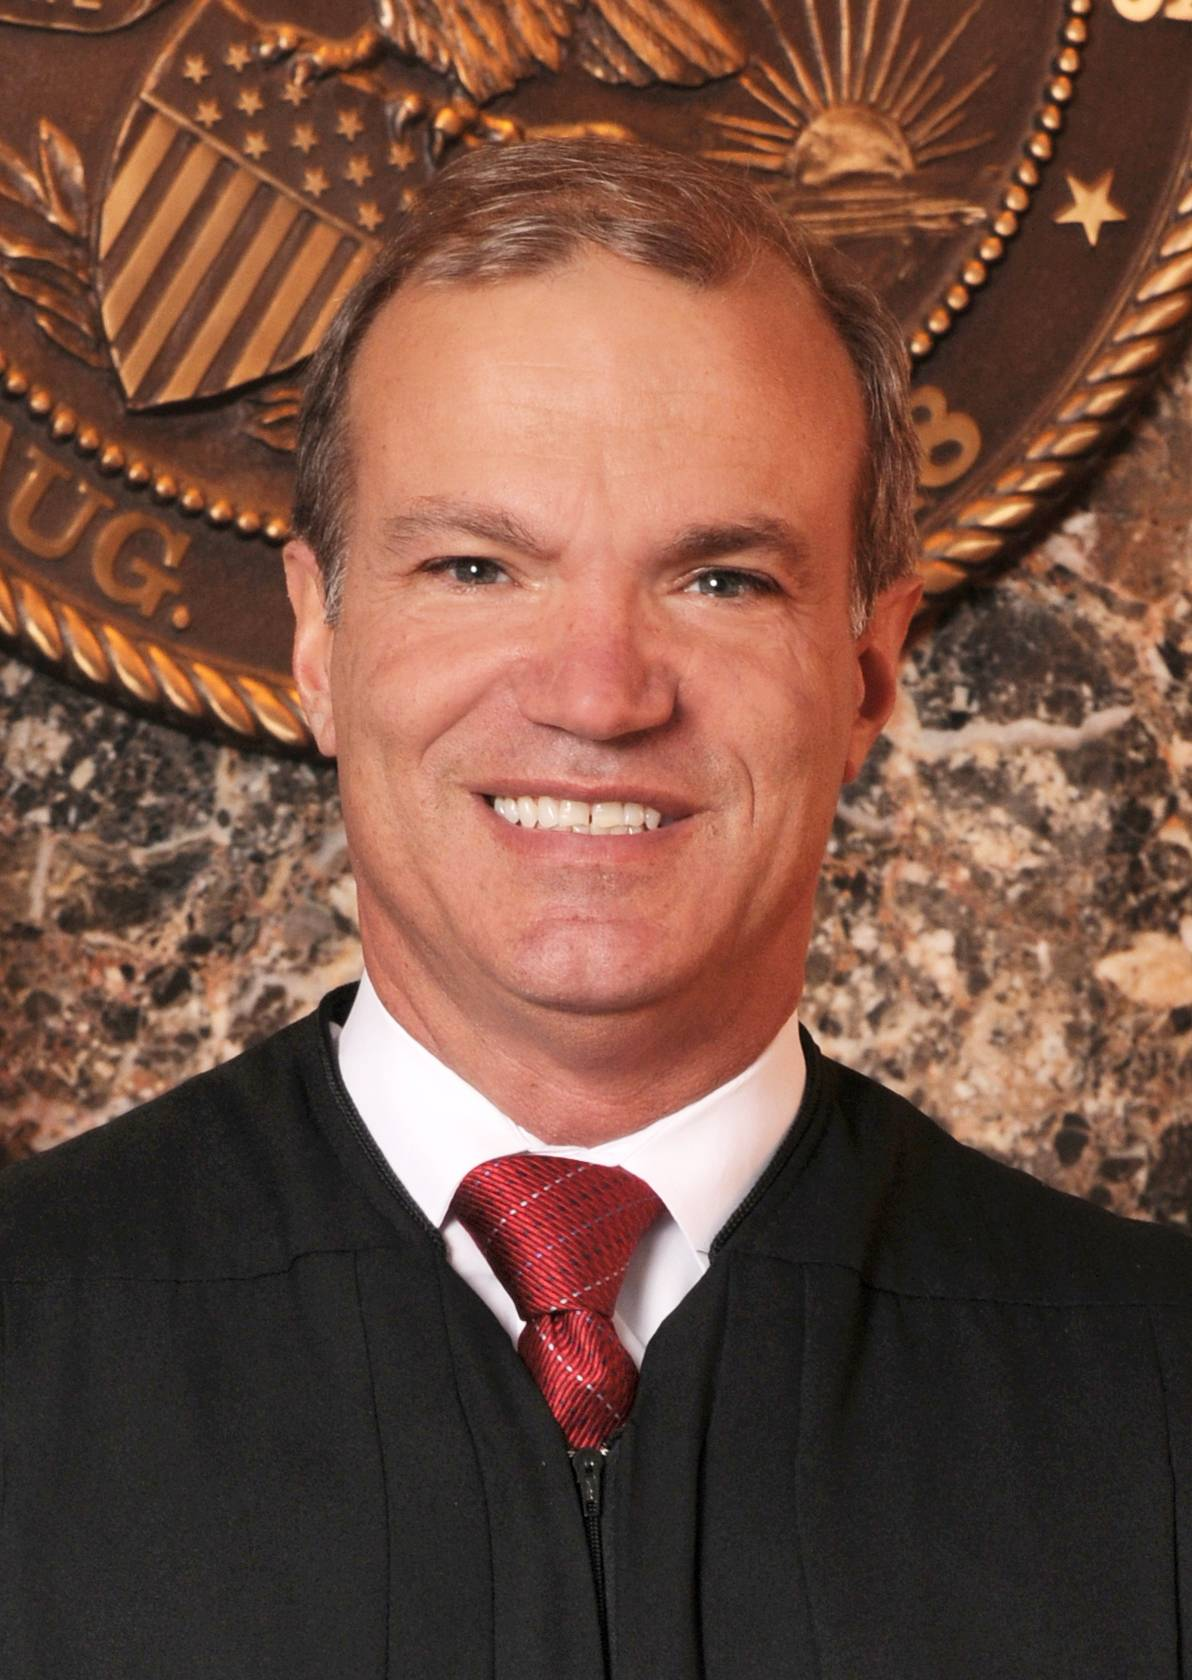 Bob Gibson, running for 18th Circuit (Thompson vacancy)